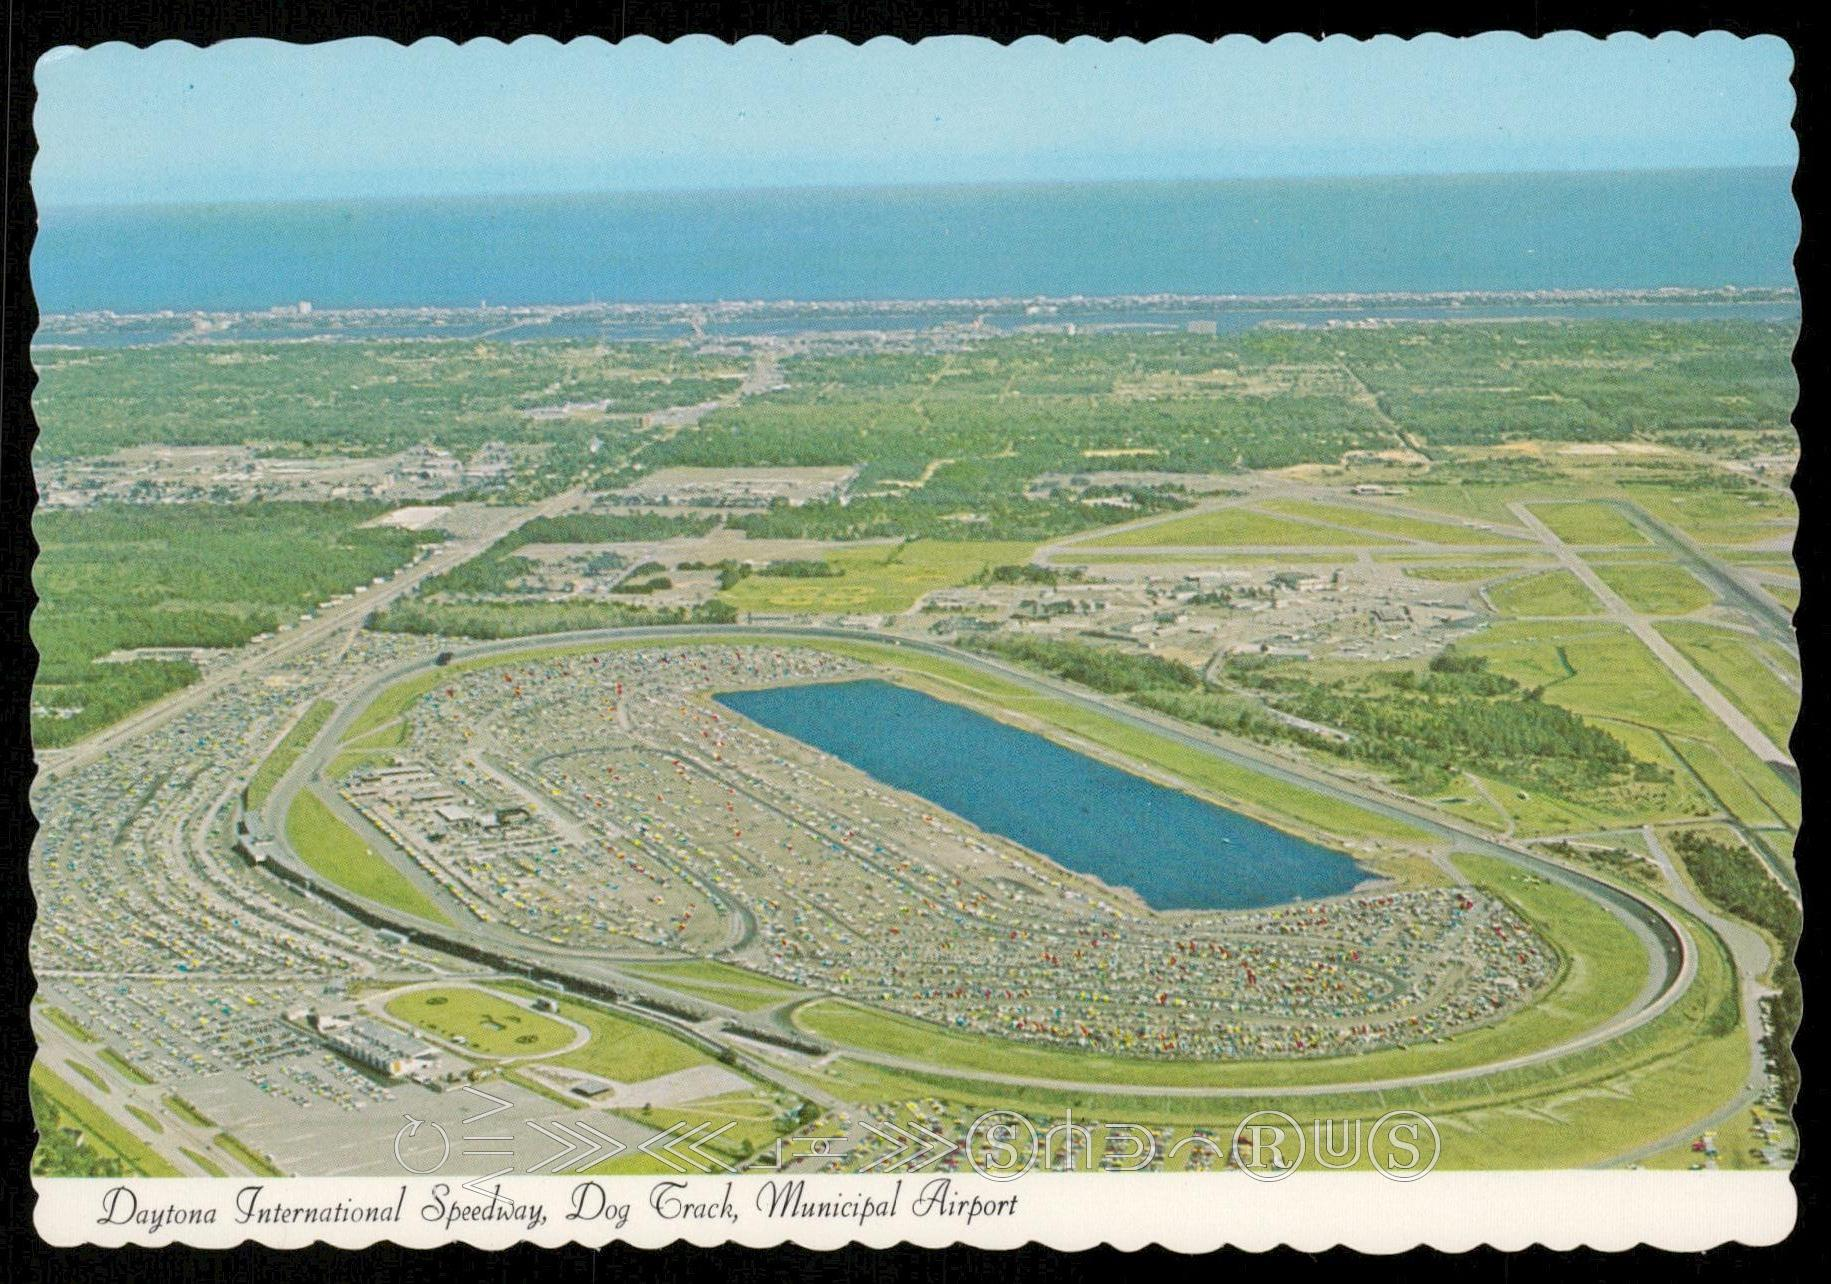 Daytona Dog Track >> Daytona International Speedway Dog Track Municipal Airport